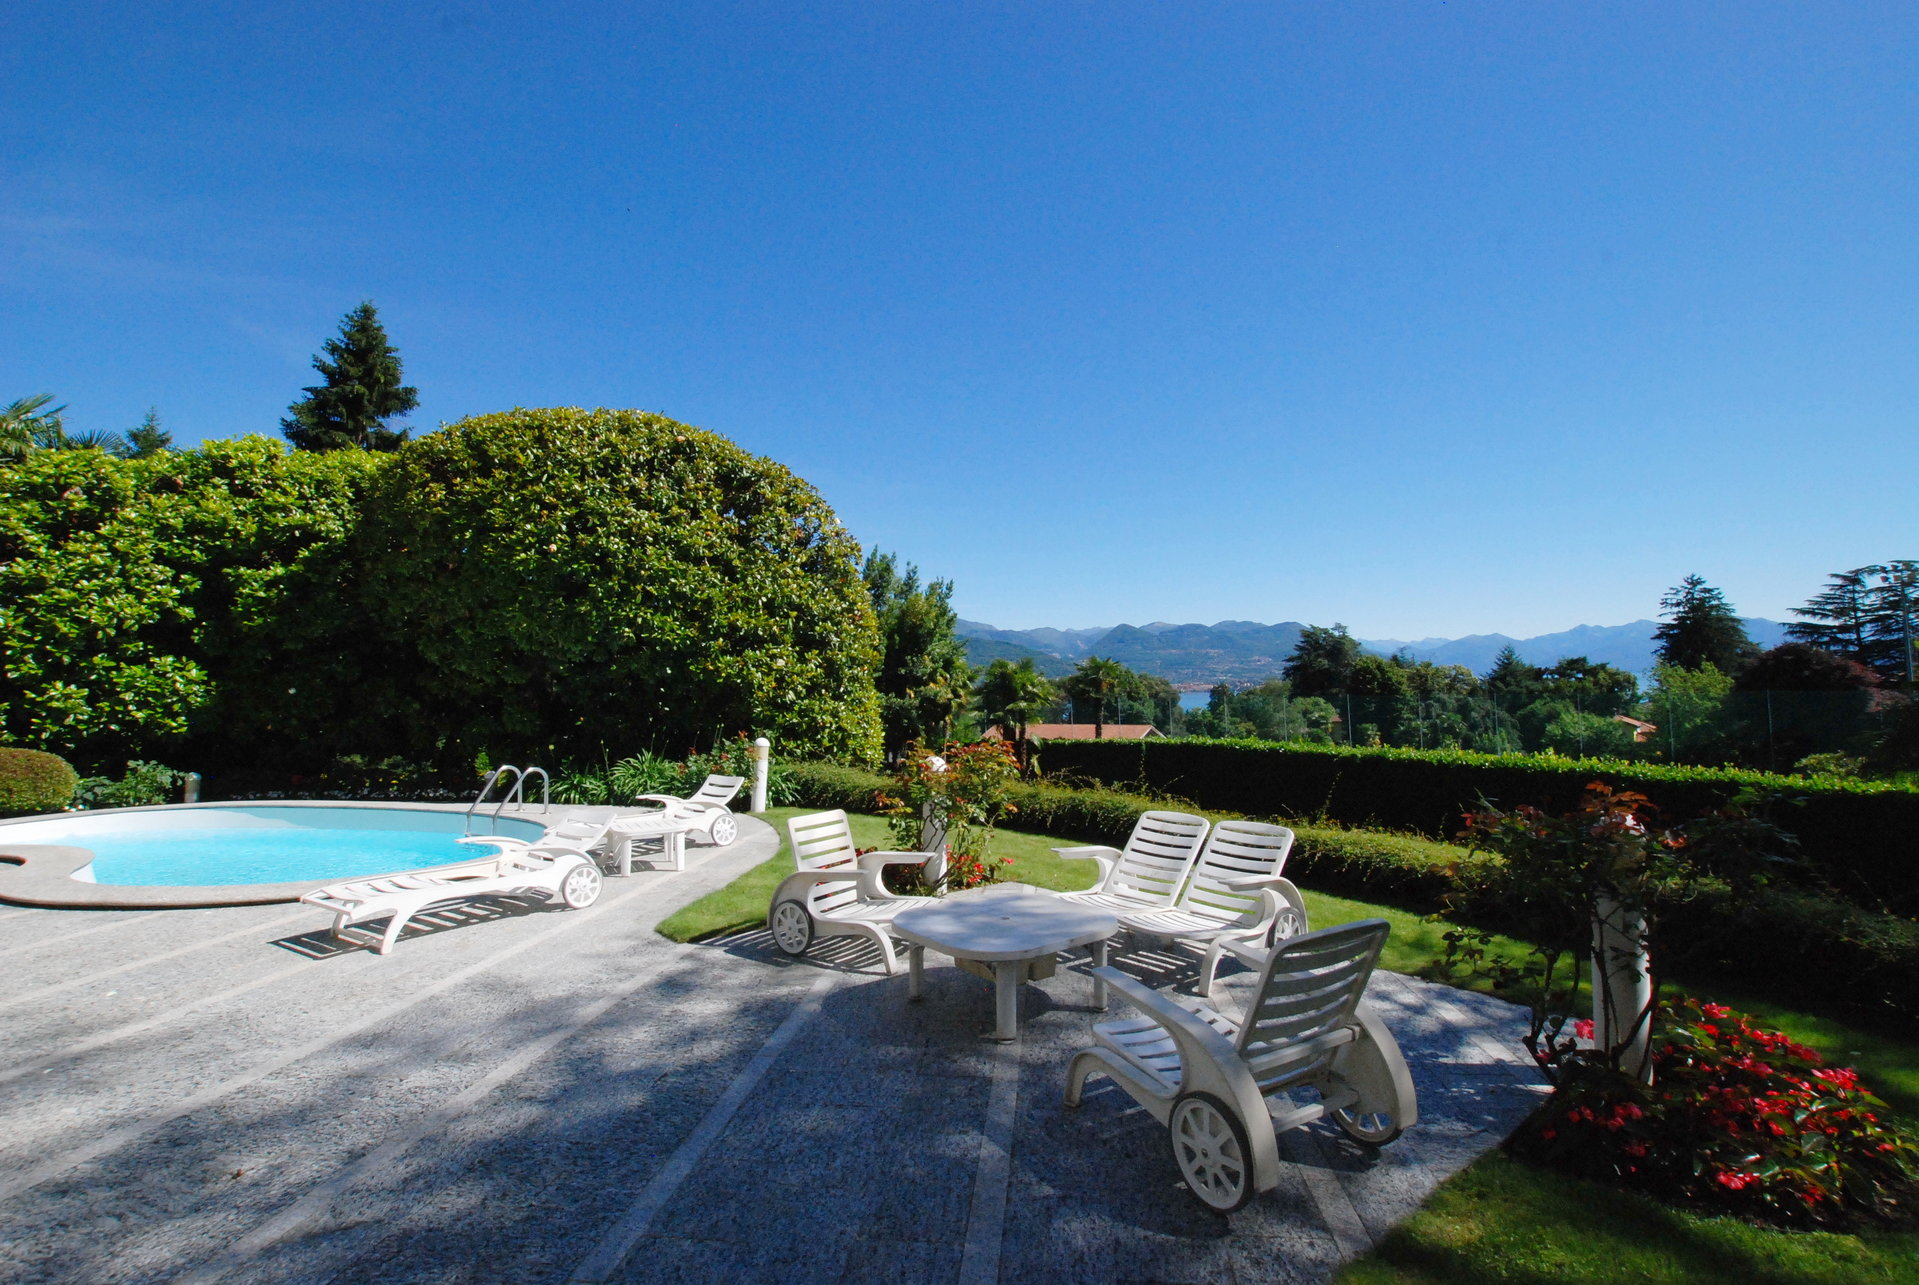 Luxurious apartment for sale in a villa in Stresa - swimming pool